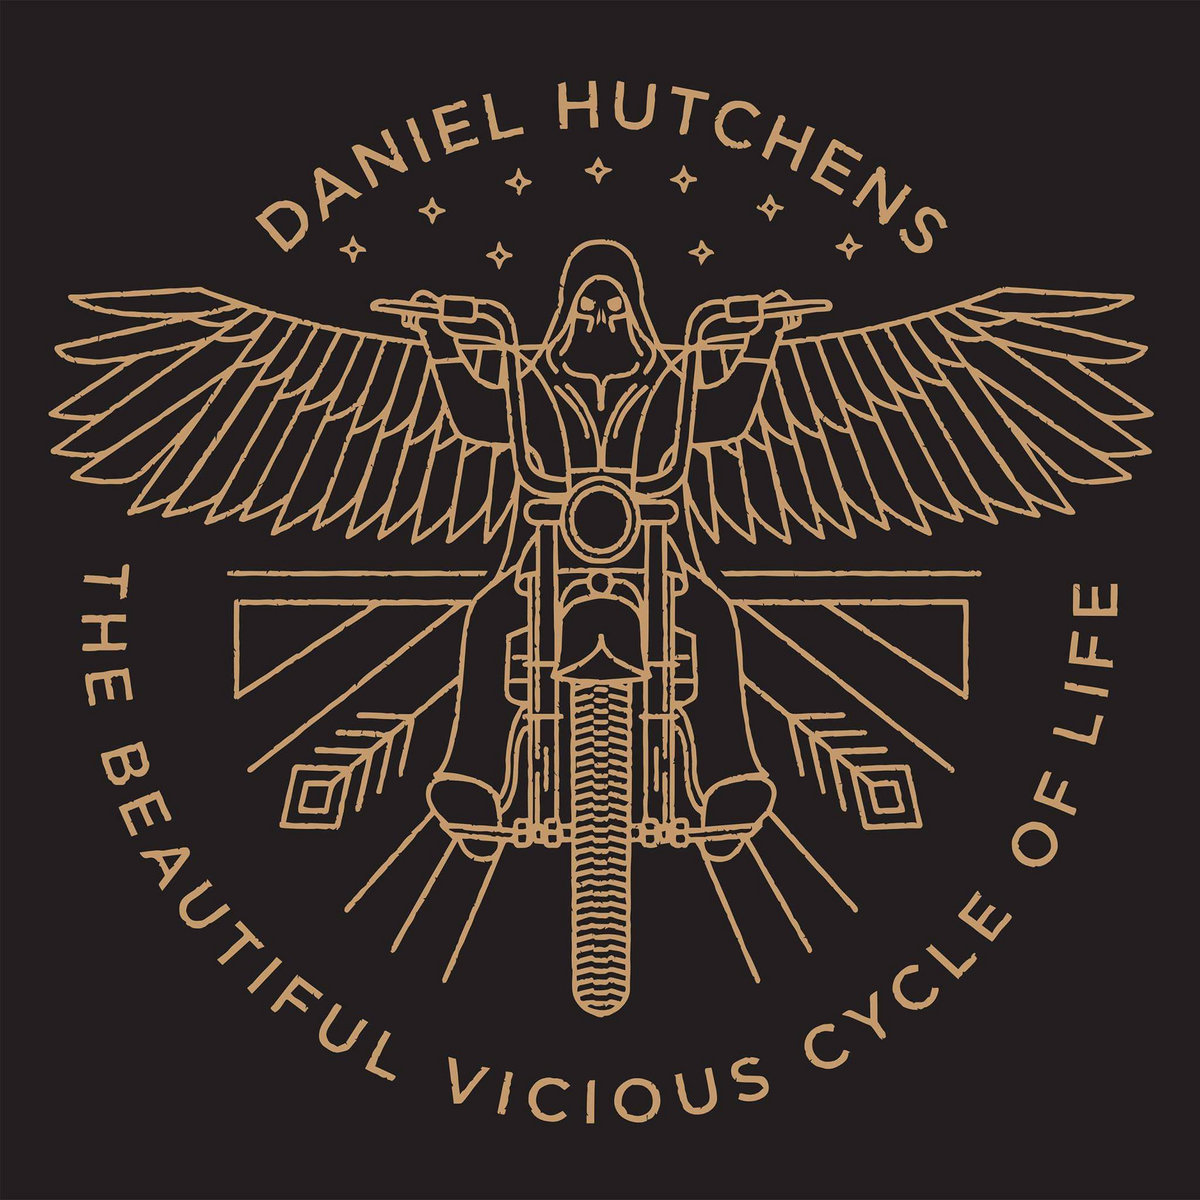 the beautiful vicious cycle of life available on vinyl cd